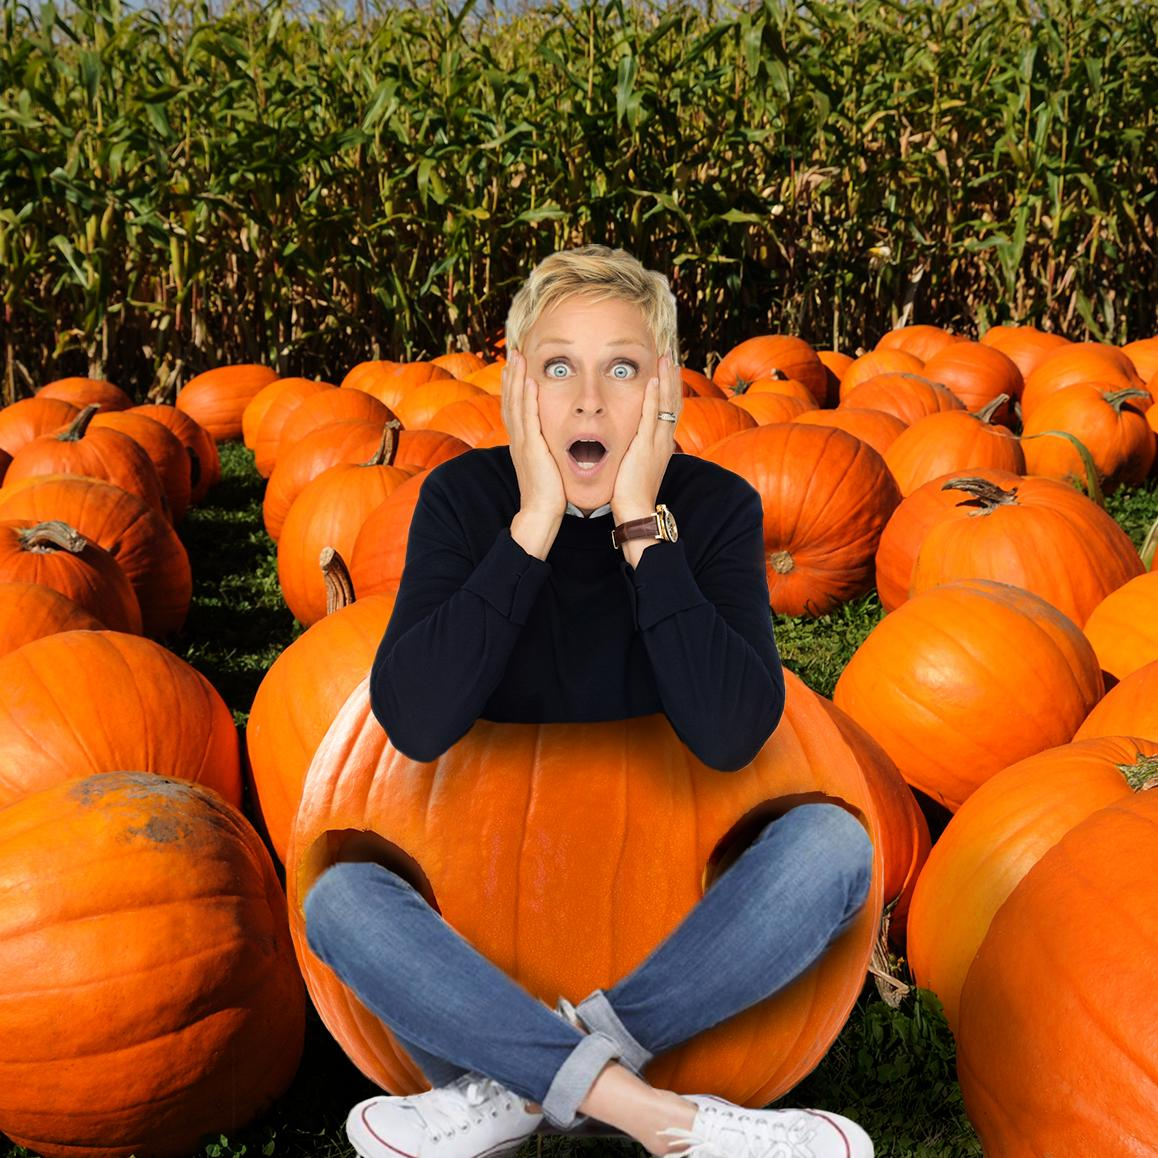 It's pumpkin spice season. There's a pumpkin, and I'm the spice. If you have a wonderfully horrible picture of your kid in a pumpkin, send it to me with #pumpkins4ellen !